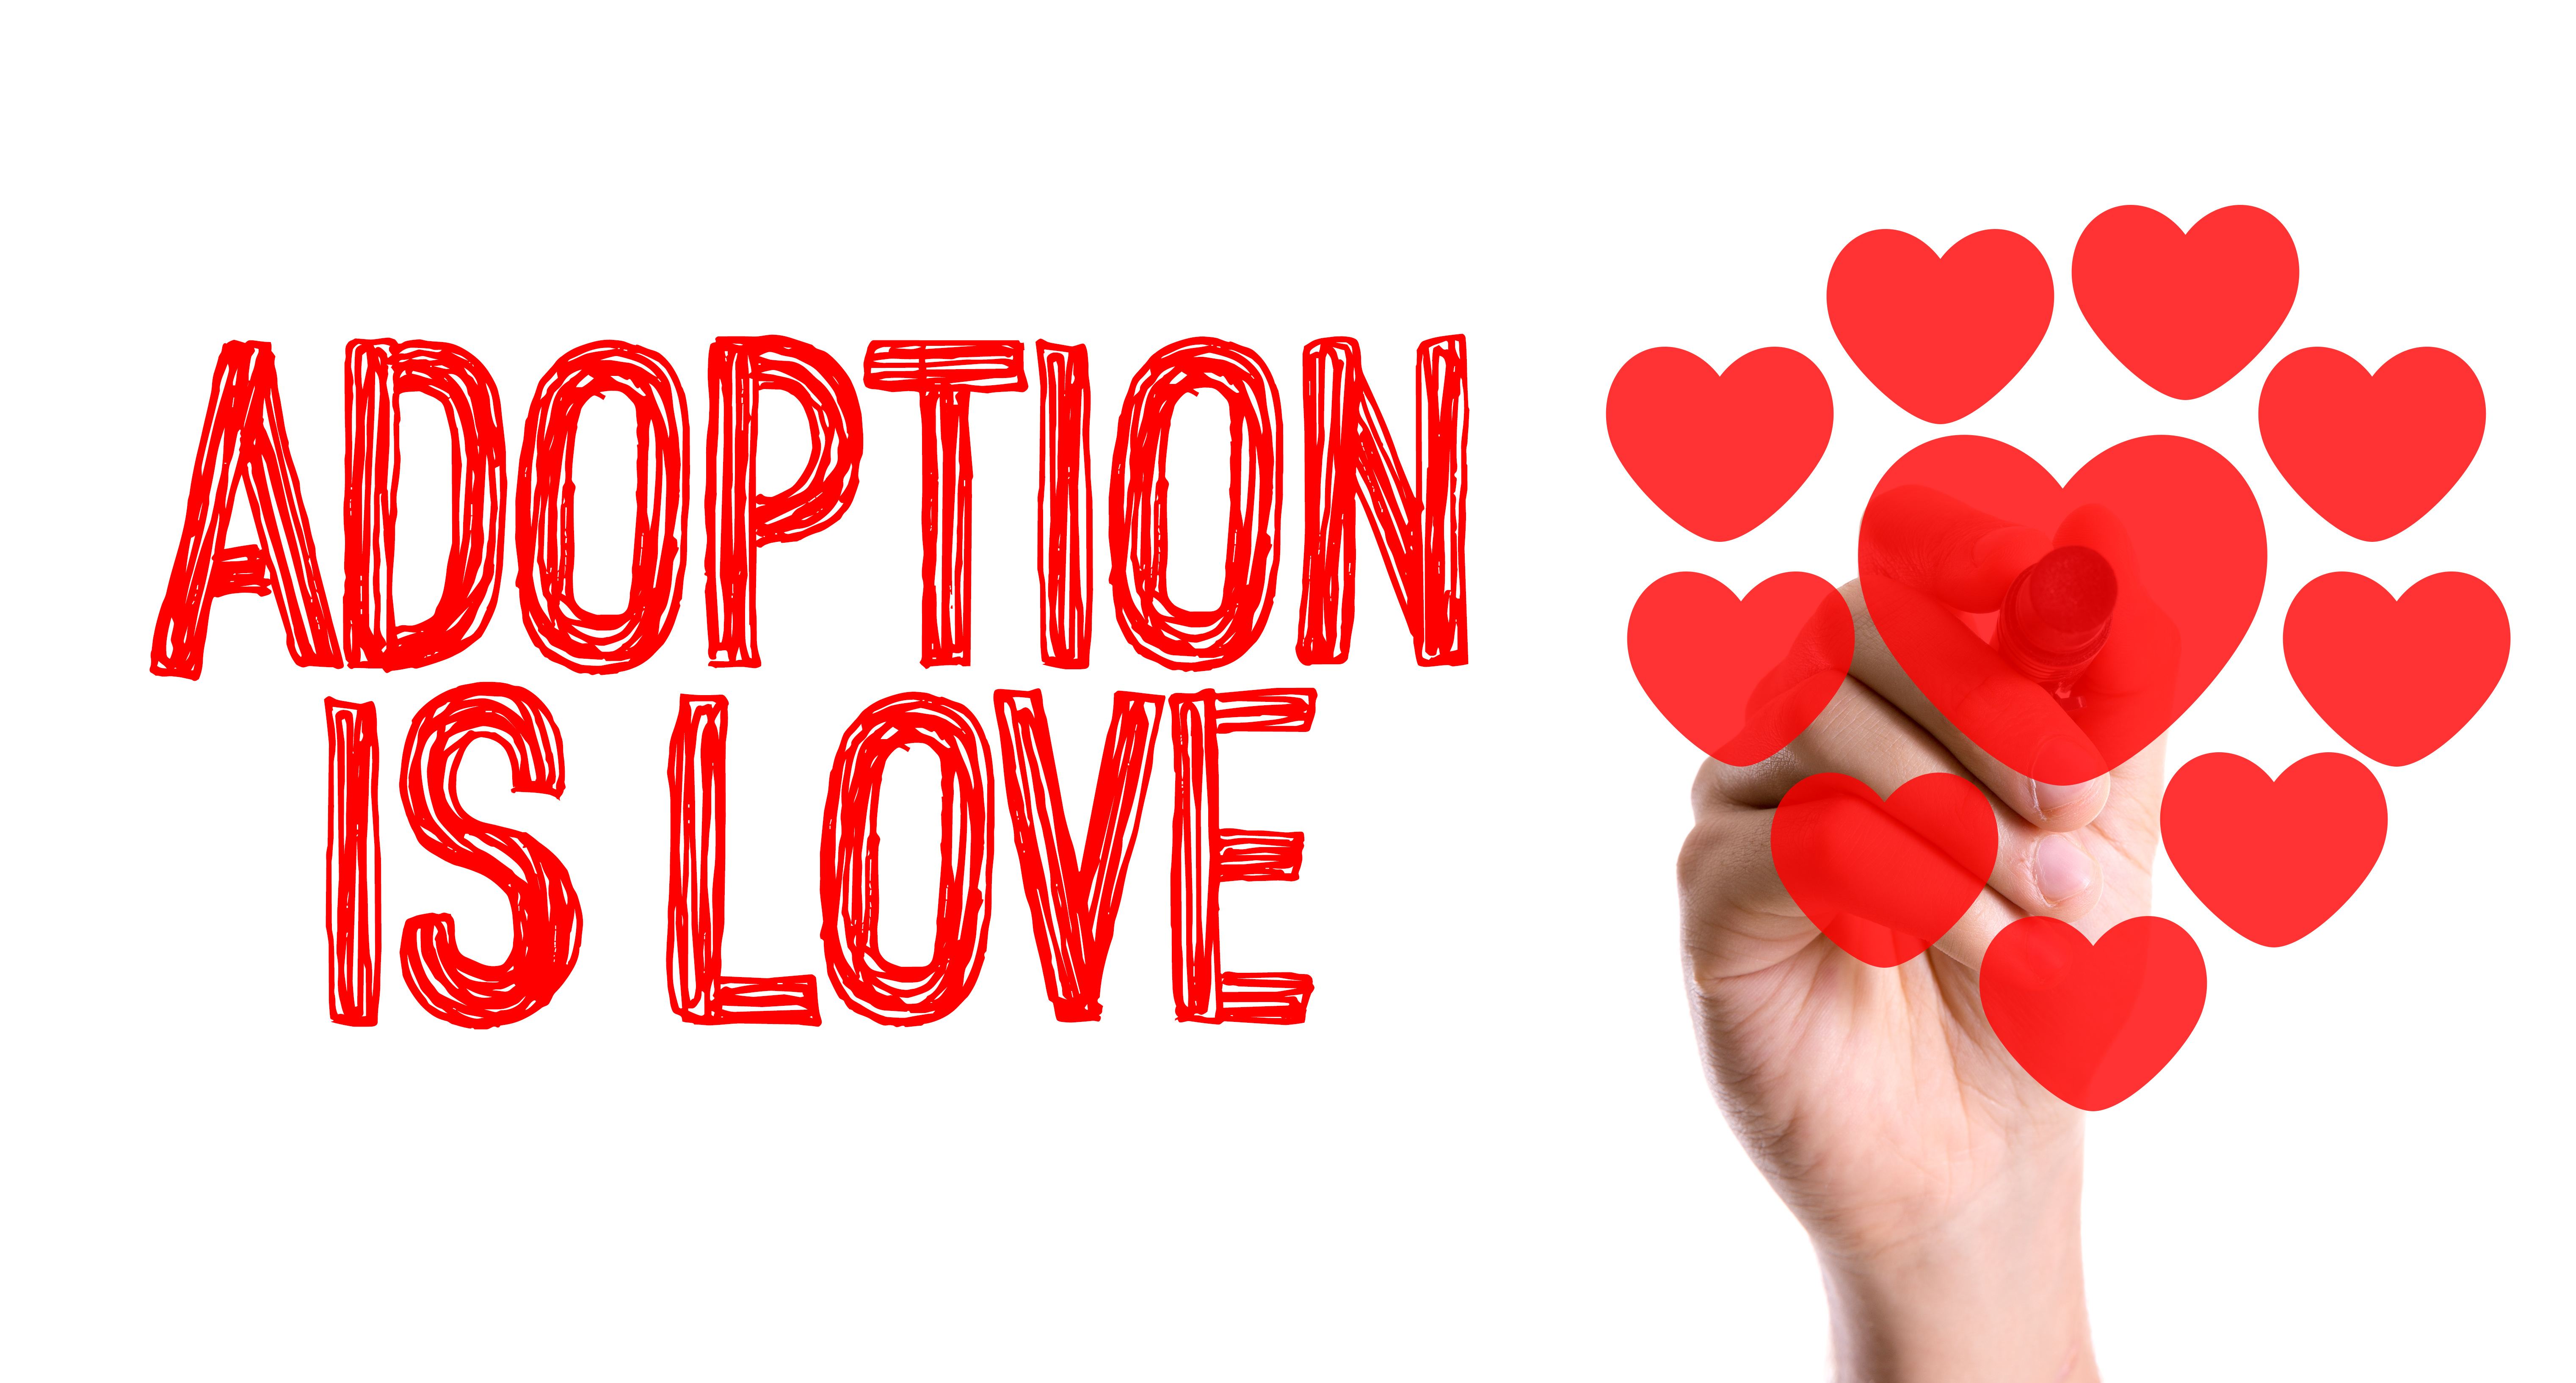 Hand with marker writing the word Adoption Is Love